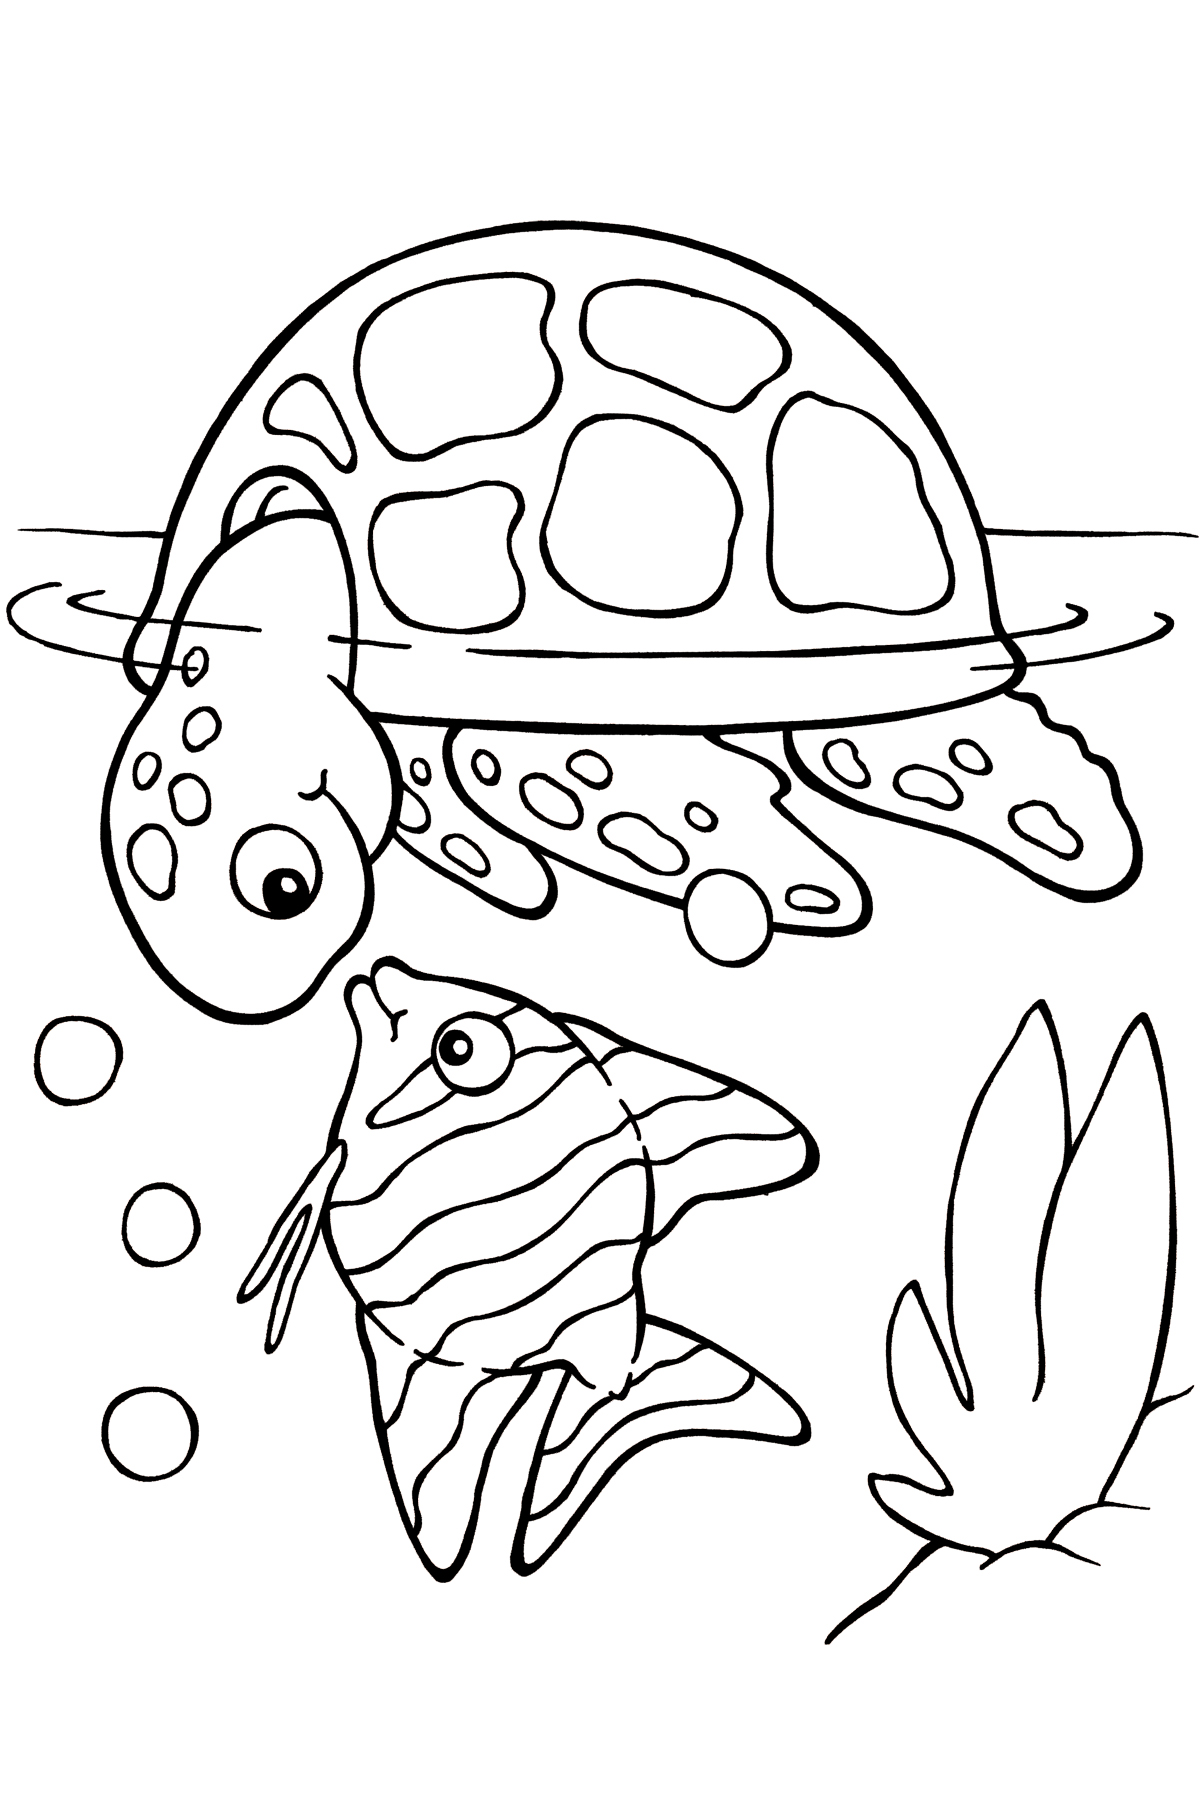 Sea turtle coloring pages to download and print for free for Free coloring fish pages